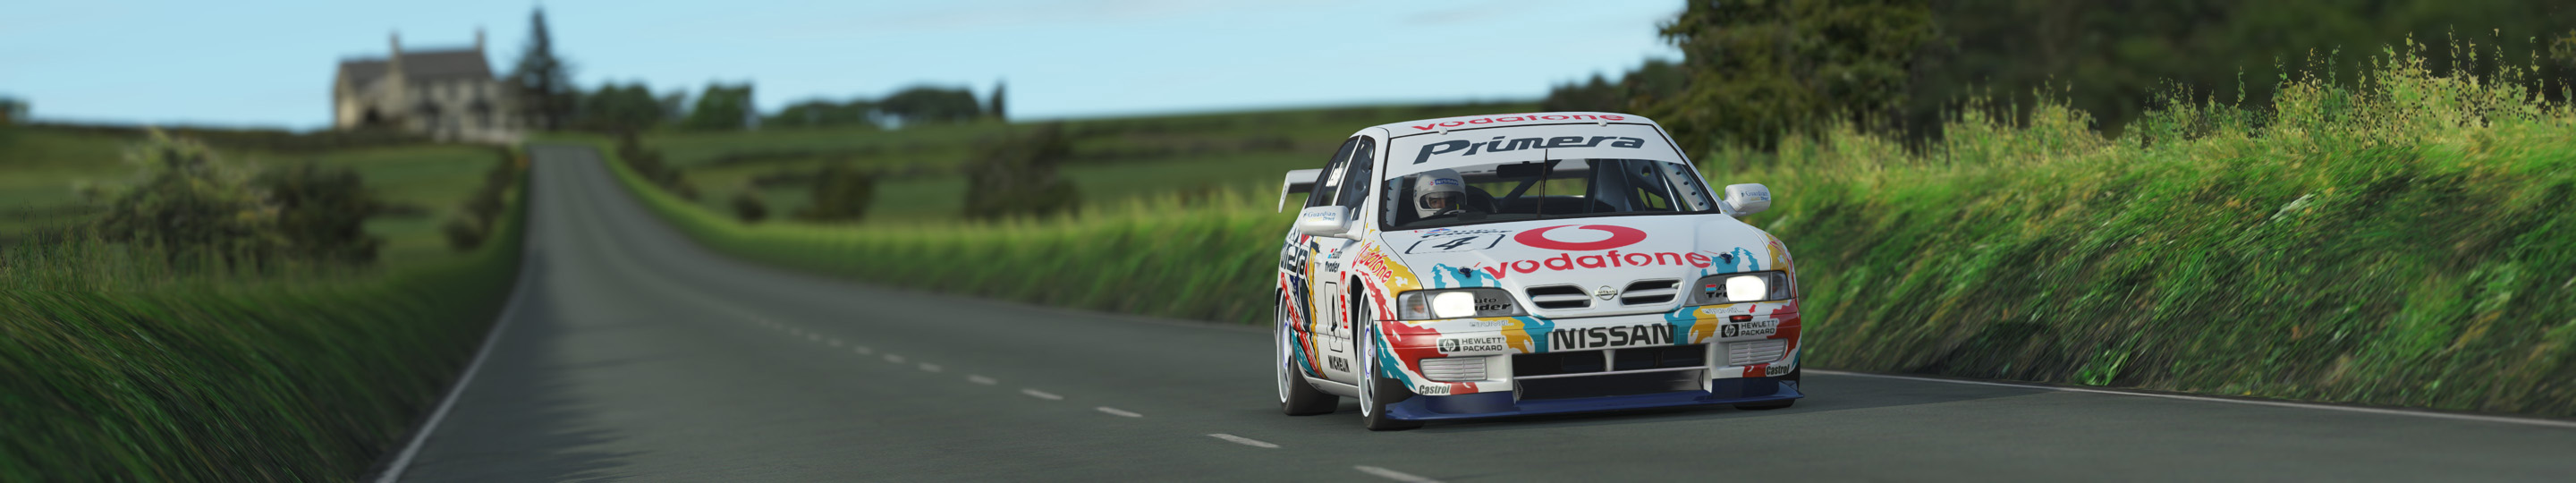 5 rFACTOR 2 ISLE of MAN by JIM PEARSON with NISSAN PRIMERA copy.jpg